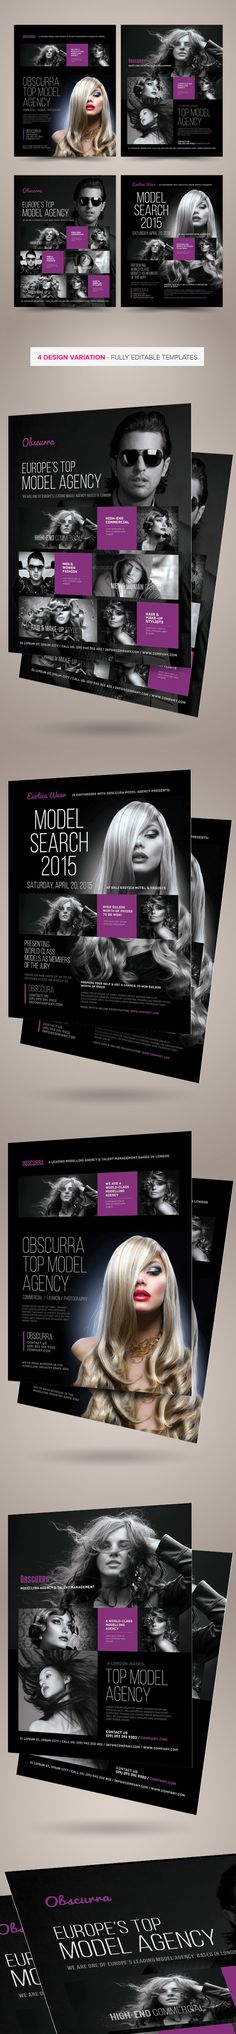 Model or Talent Agency Flyers on Behance